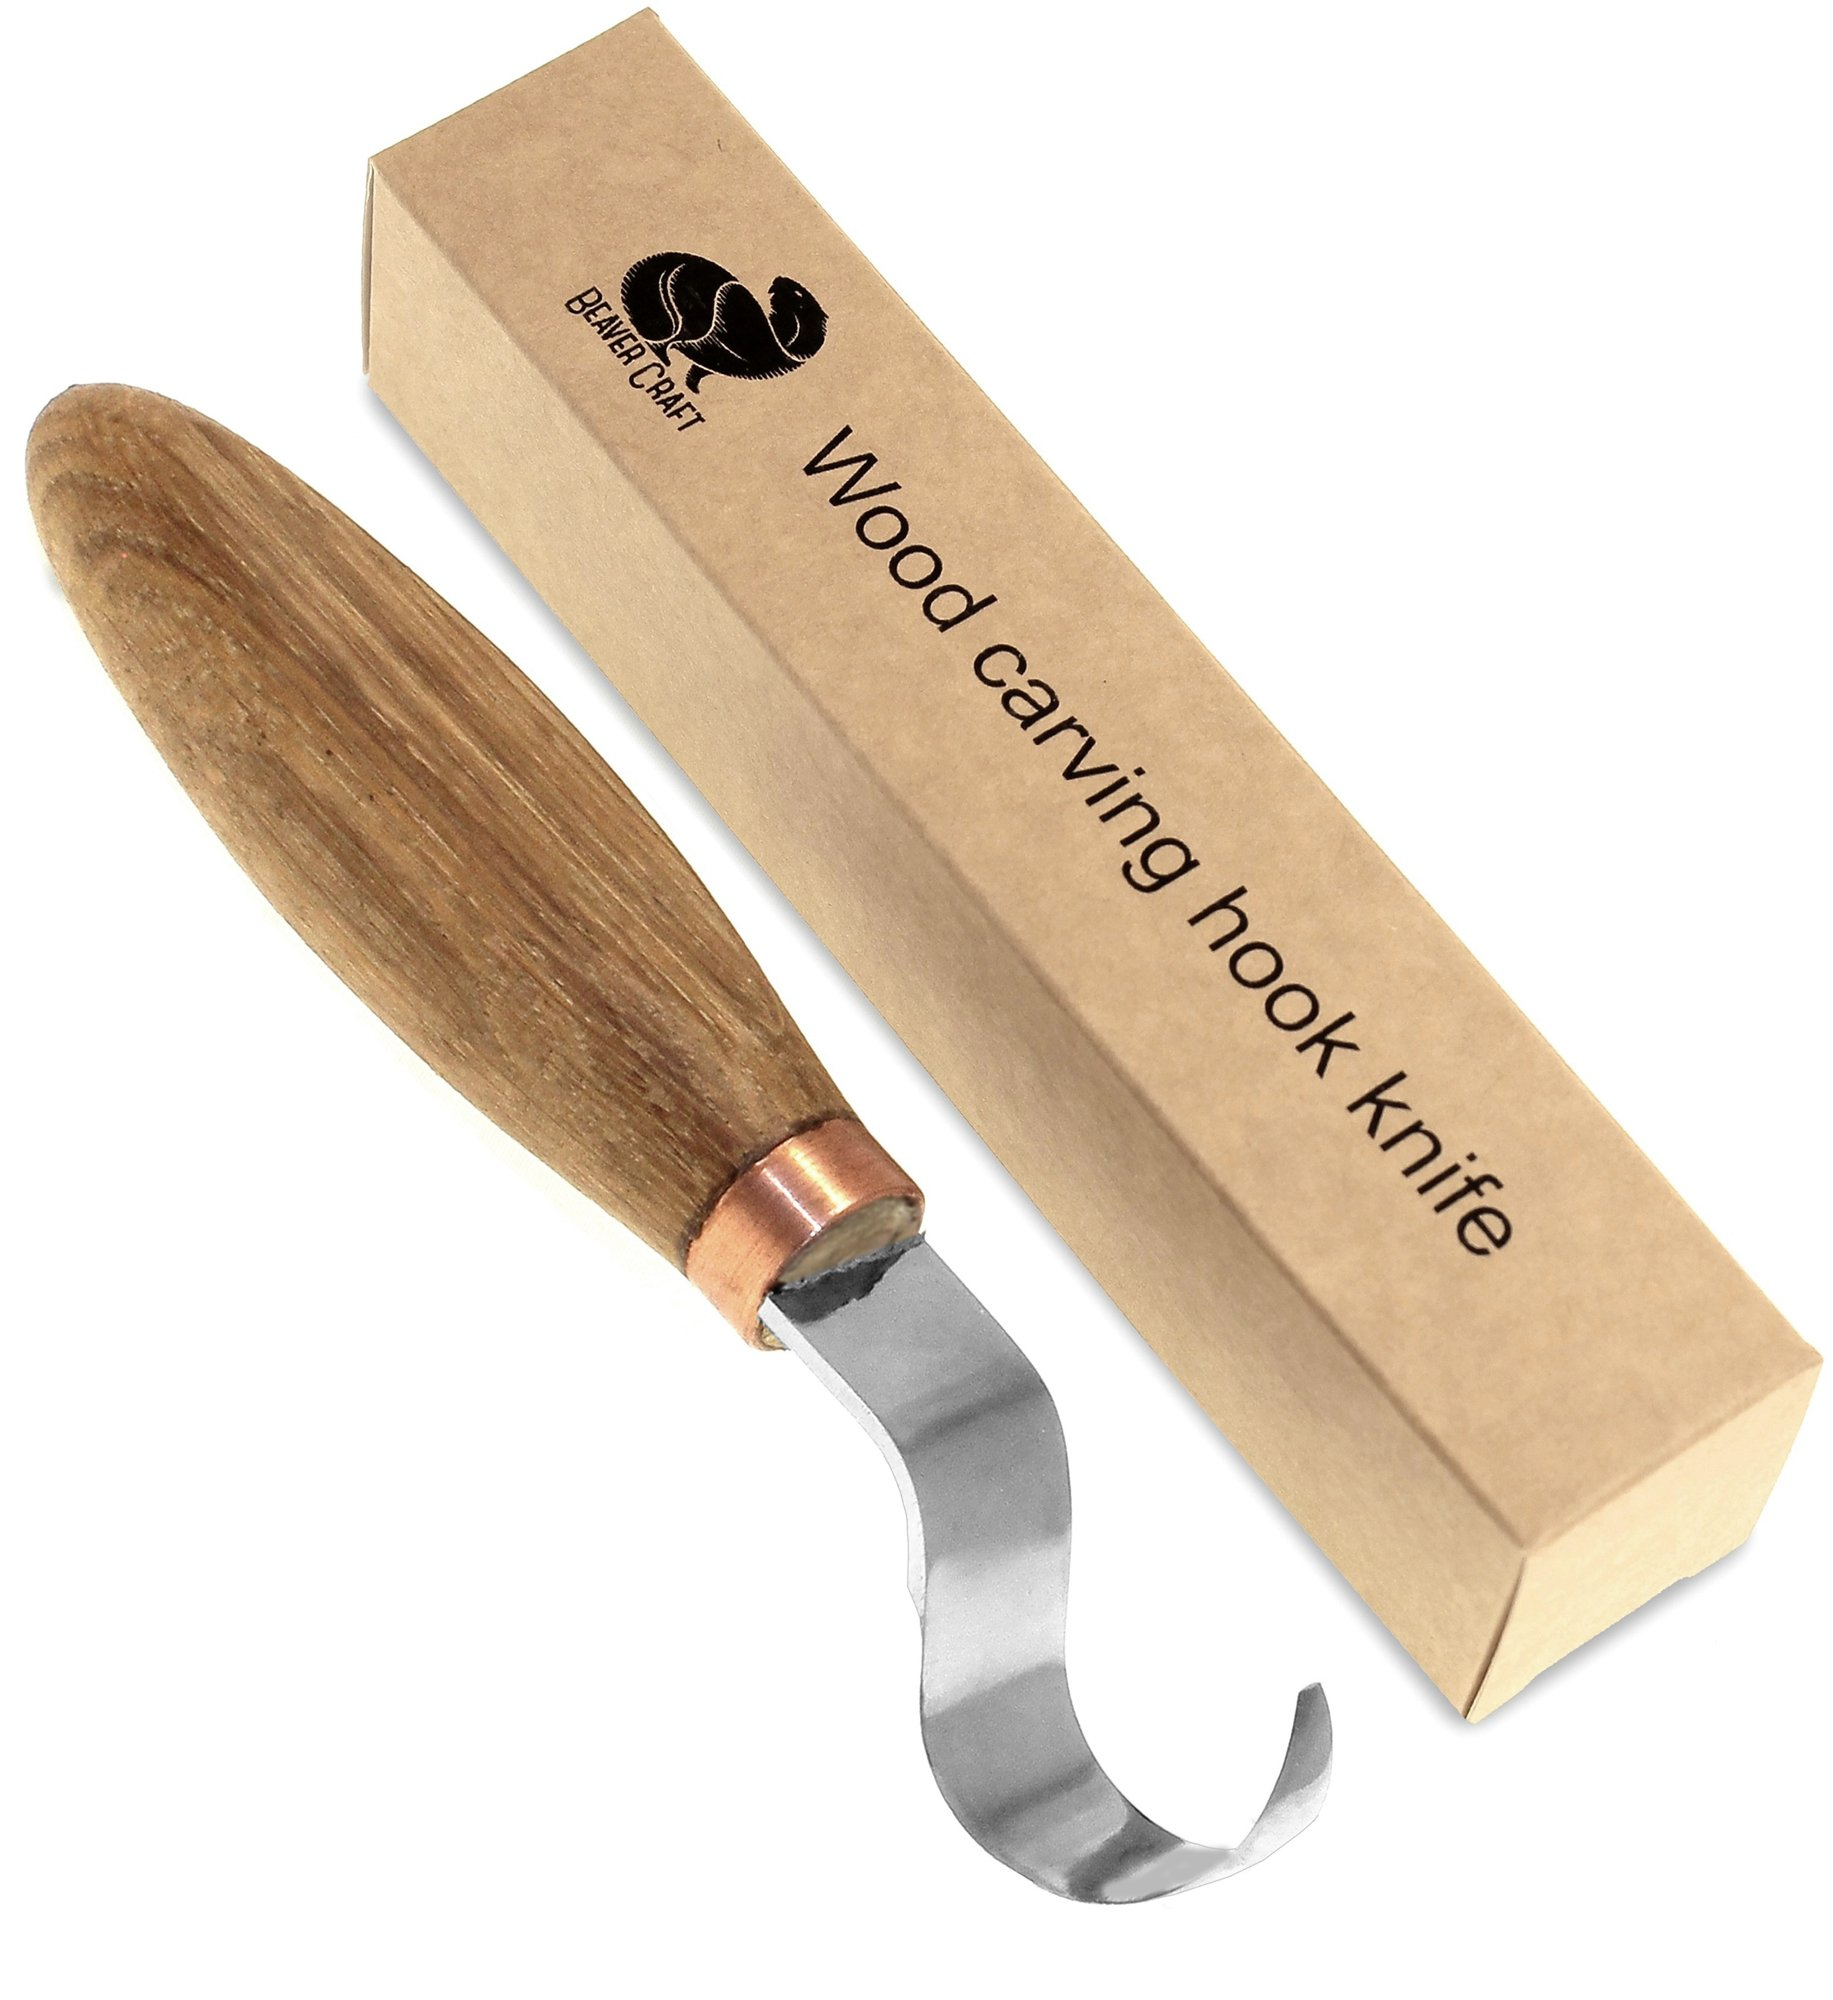 Product Wood Carving Knife: Best Rated In Wood Carving Tools & Helpful Customer